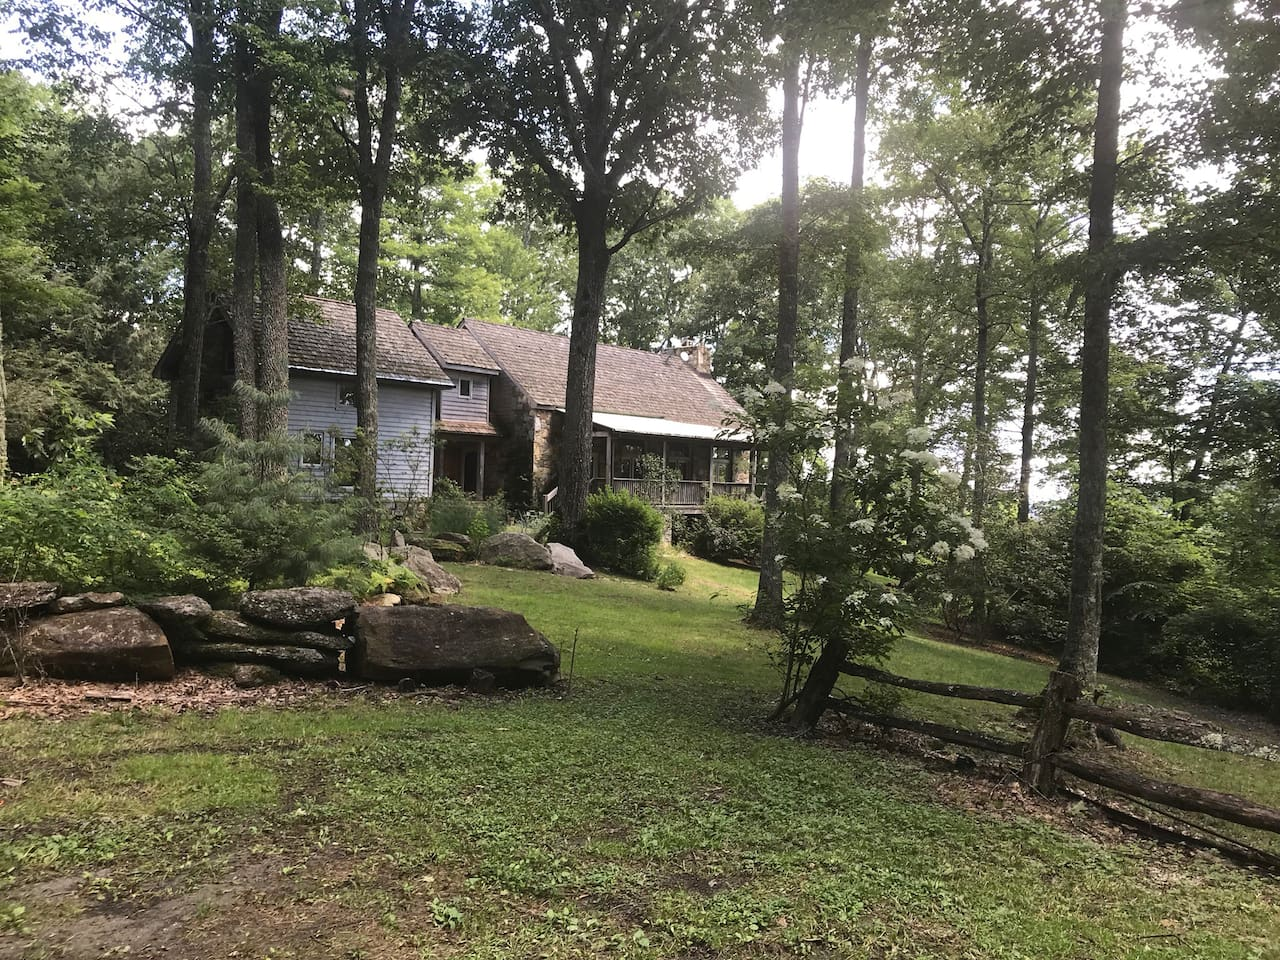 This lovely lodge is nestled in the woods and fronts on to 6,090 acres of the Panthertown wilderness. You could not ask for a more dreamy, restful spot! It is oozing with tranquility.